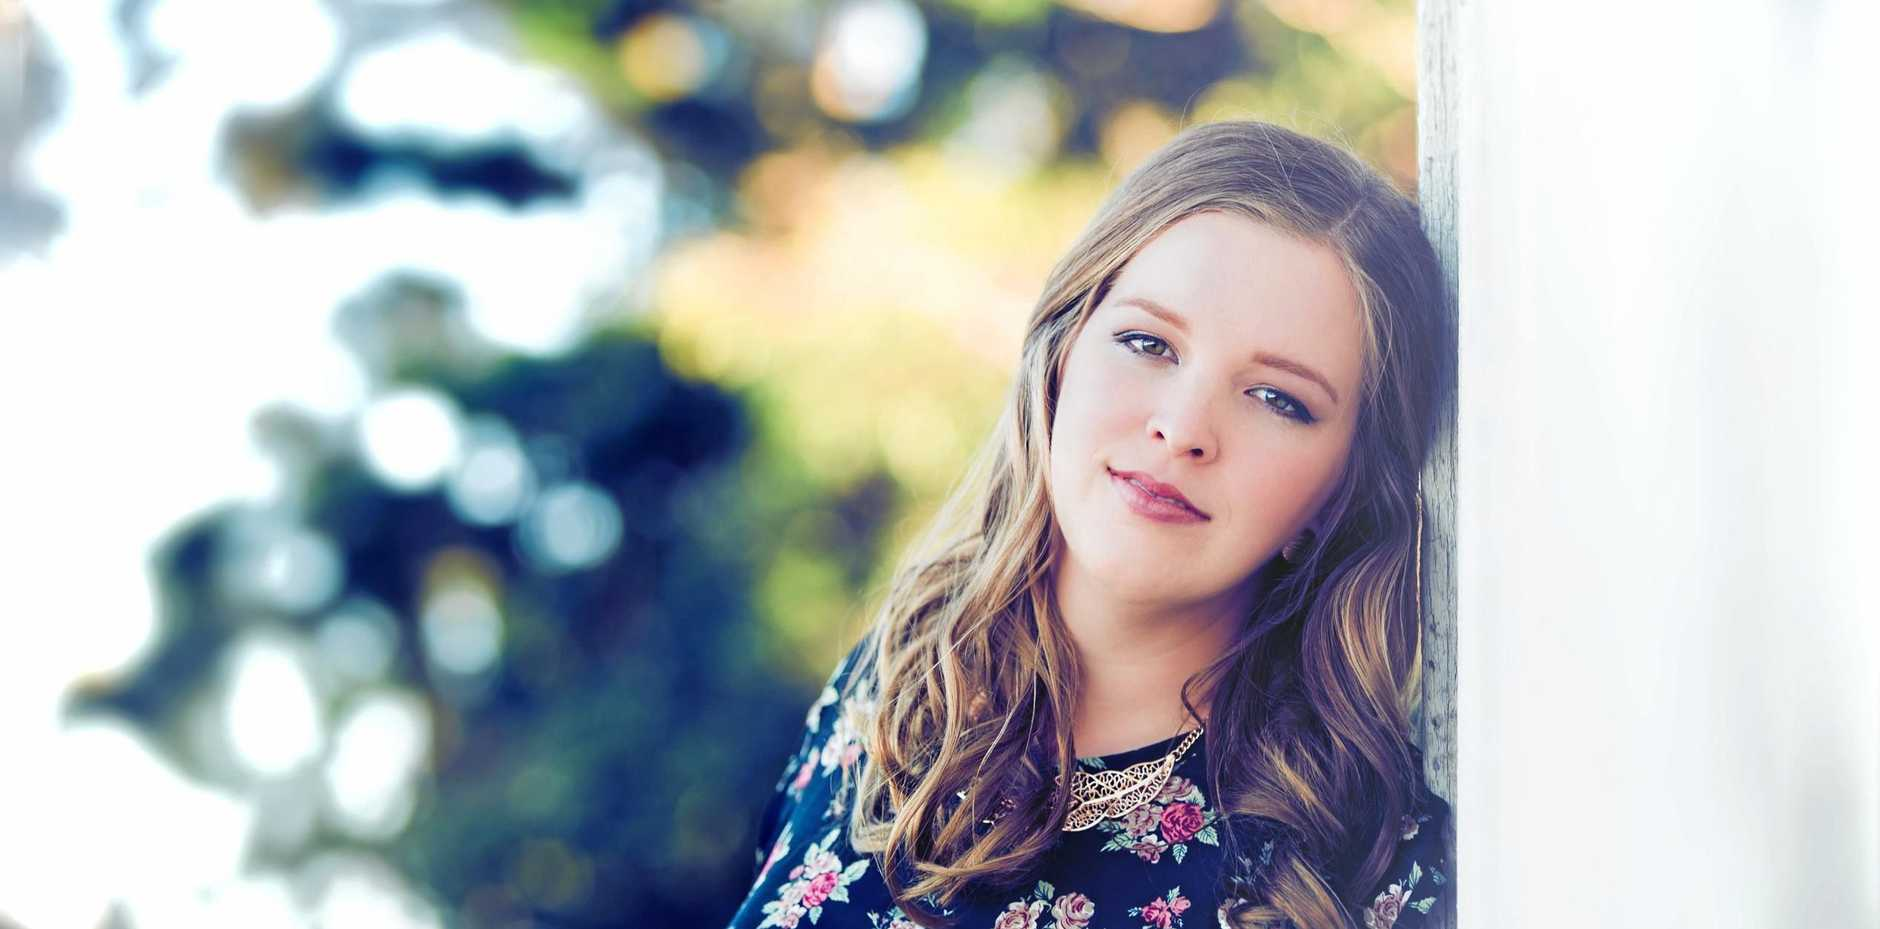 Mikayla J of Tannum Sands was chosen to attend the 2018 CMAA Senior Academy of Country Music in Tamworth.